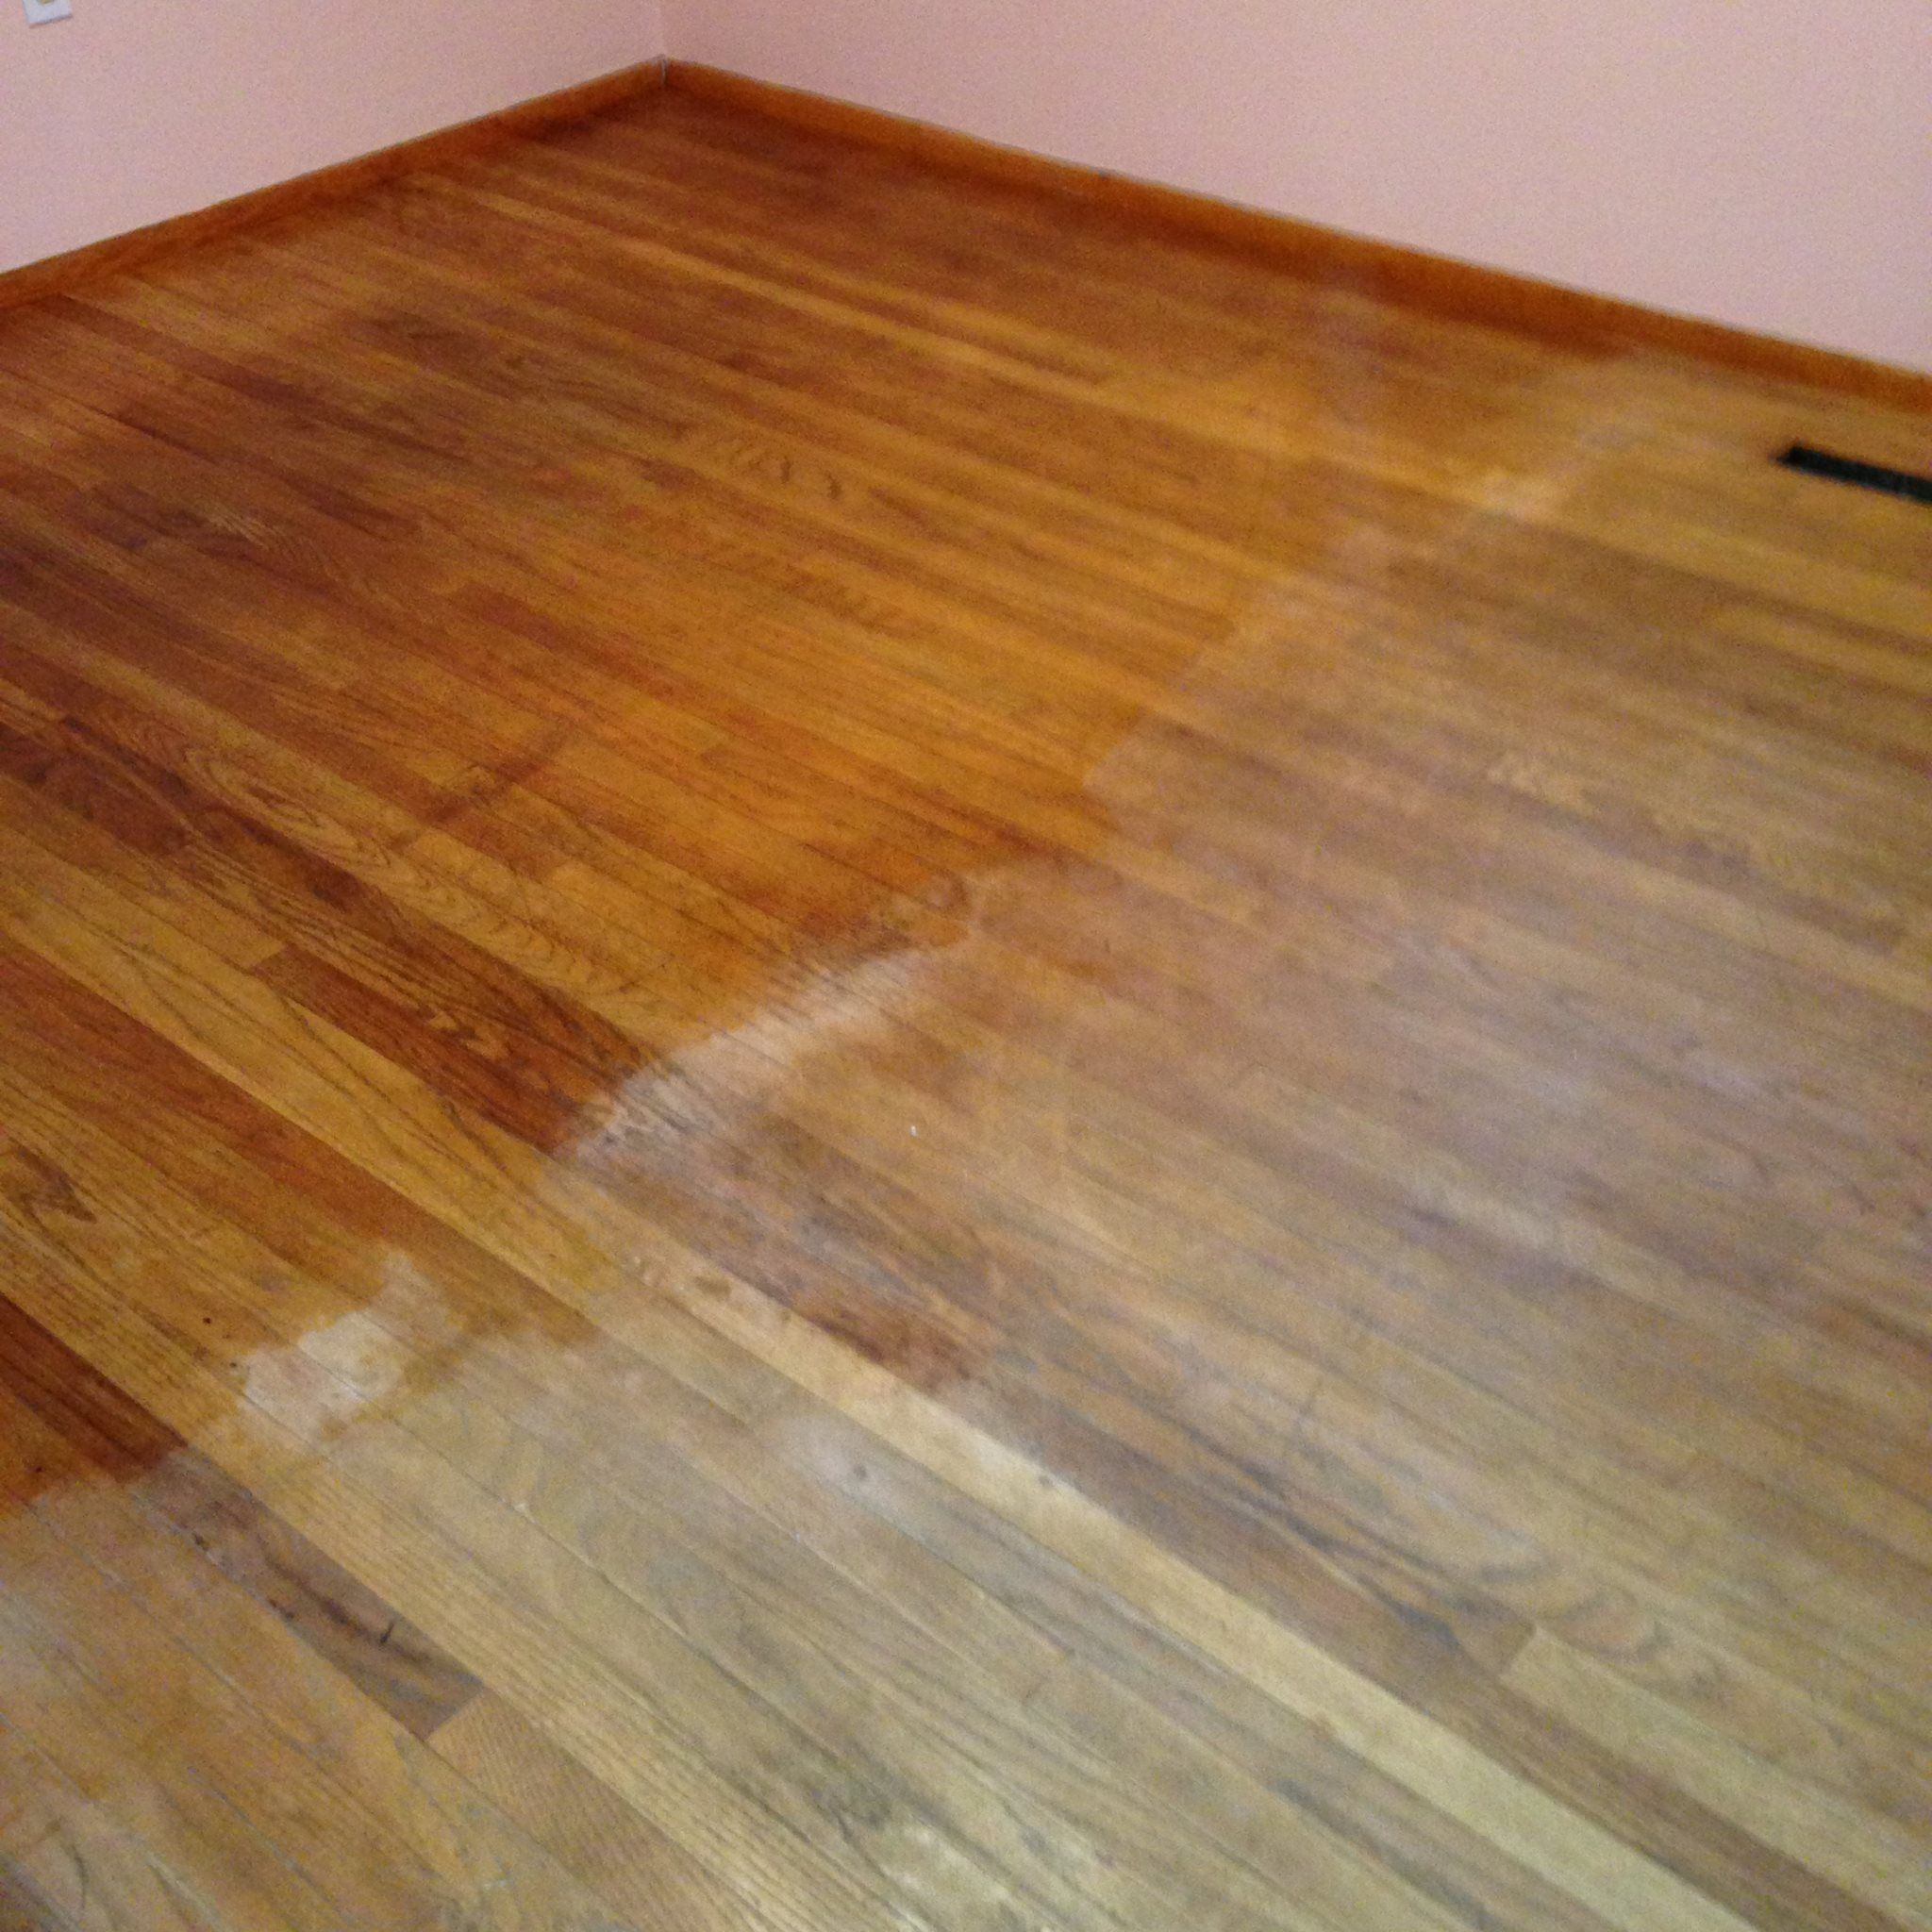 Cleaning Fake Wood Floors: 15 Wood Floor Hacks Every Homeowner Needs To Know